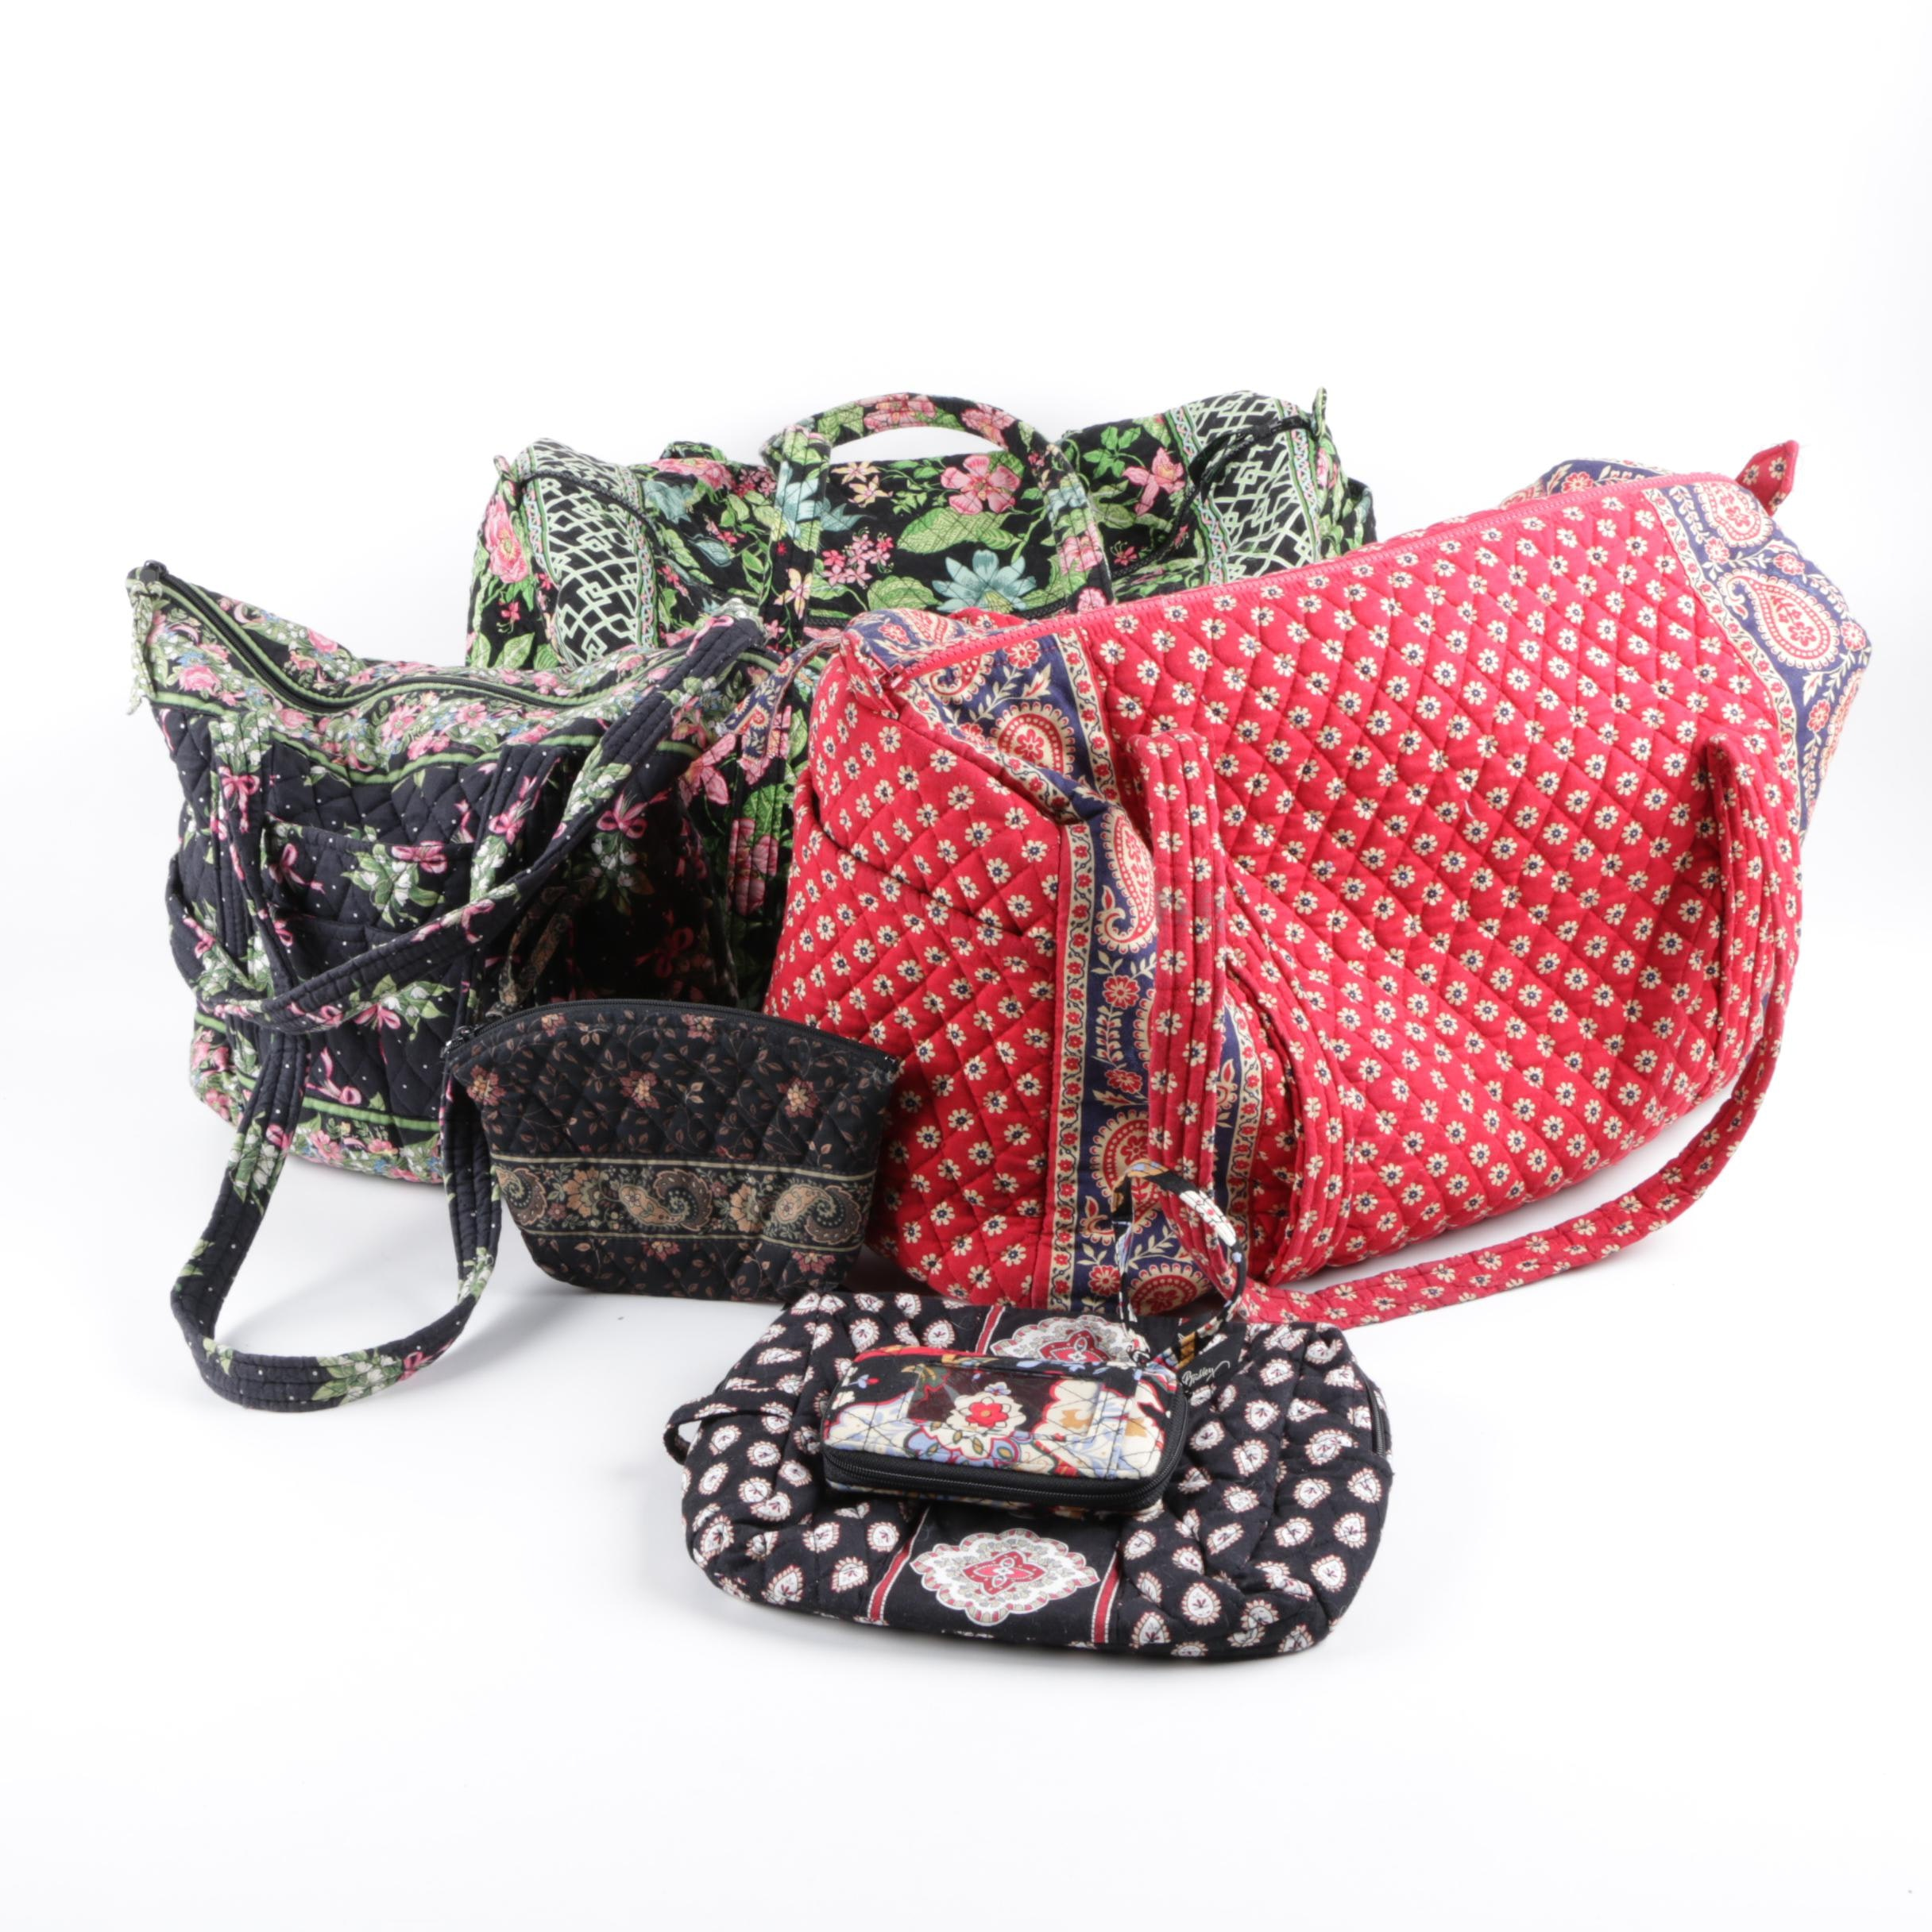 Vera Bradley Bags and Accessories